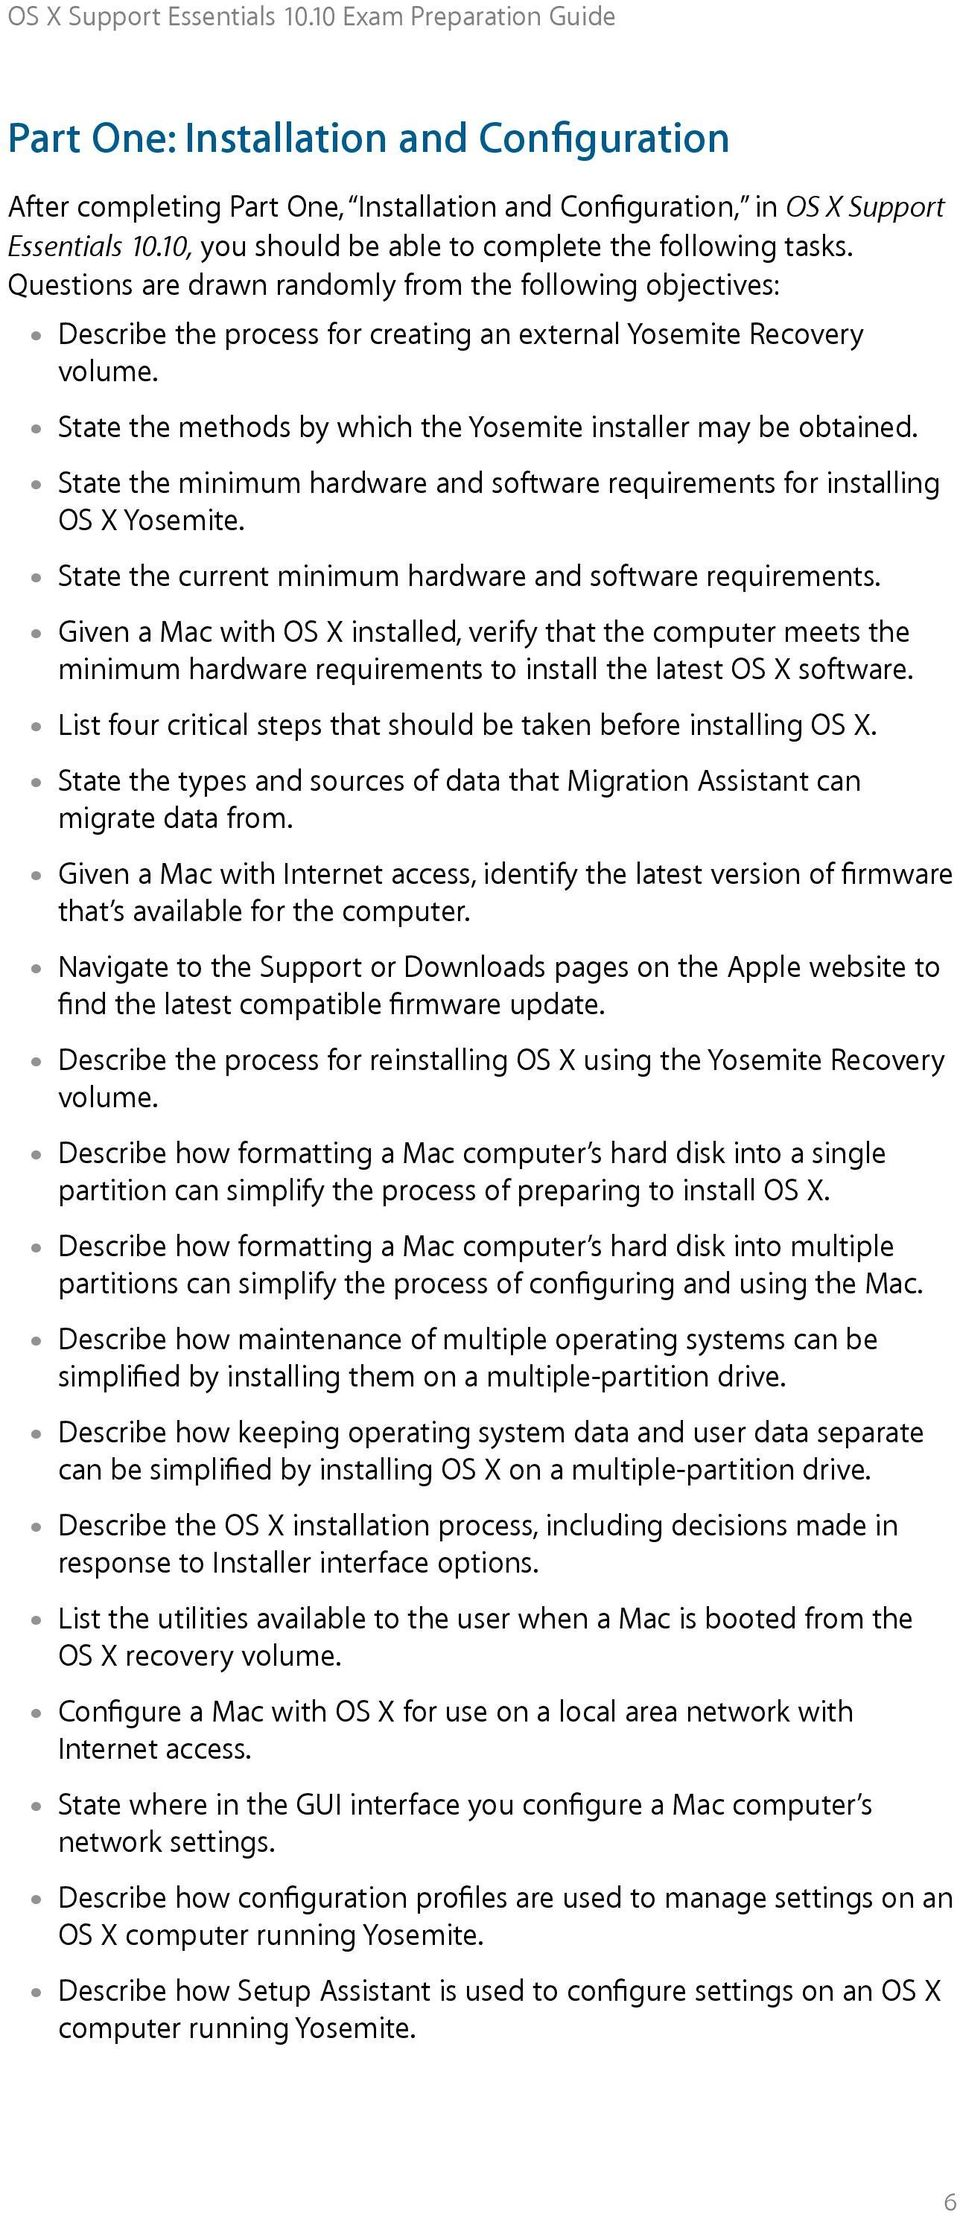 State the minimum hardware and software requirements for installing OS X Yosemite. State the current minimum hardware and software requirements.